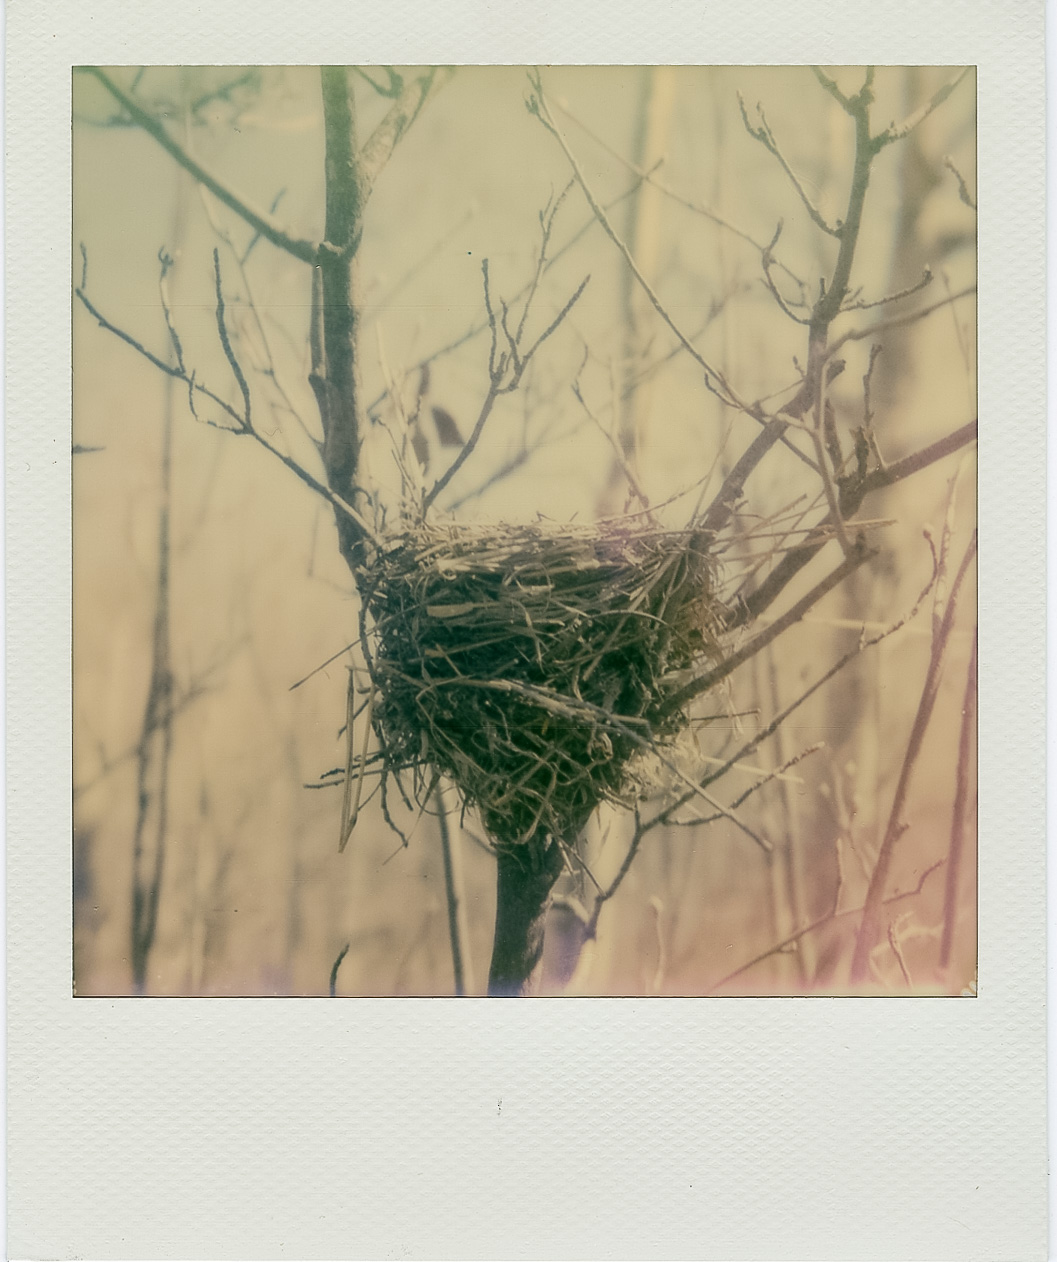 Nest | Polaroid SX70 | Impossible Film | Todd Connaghan